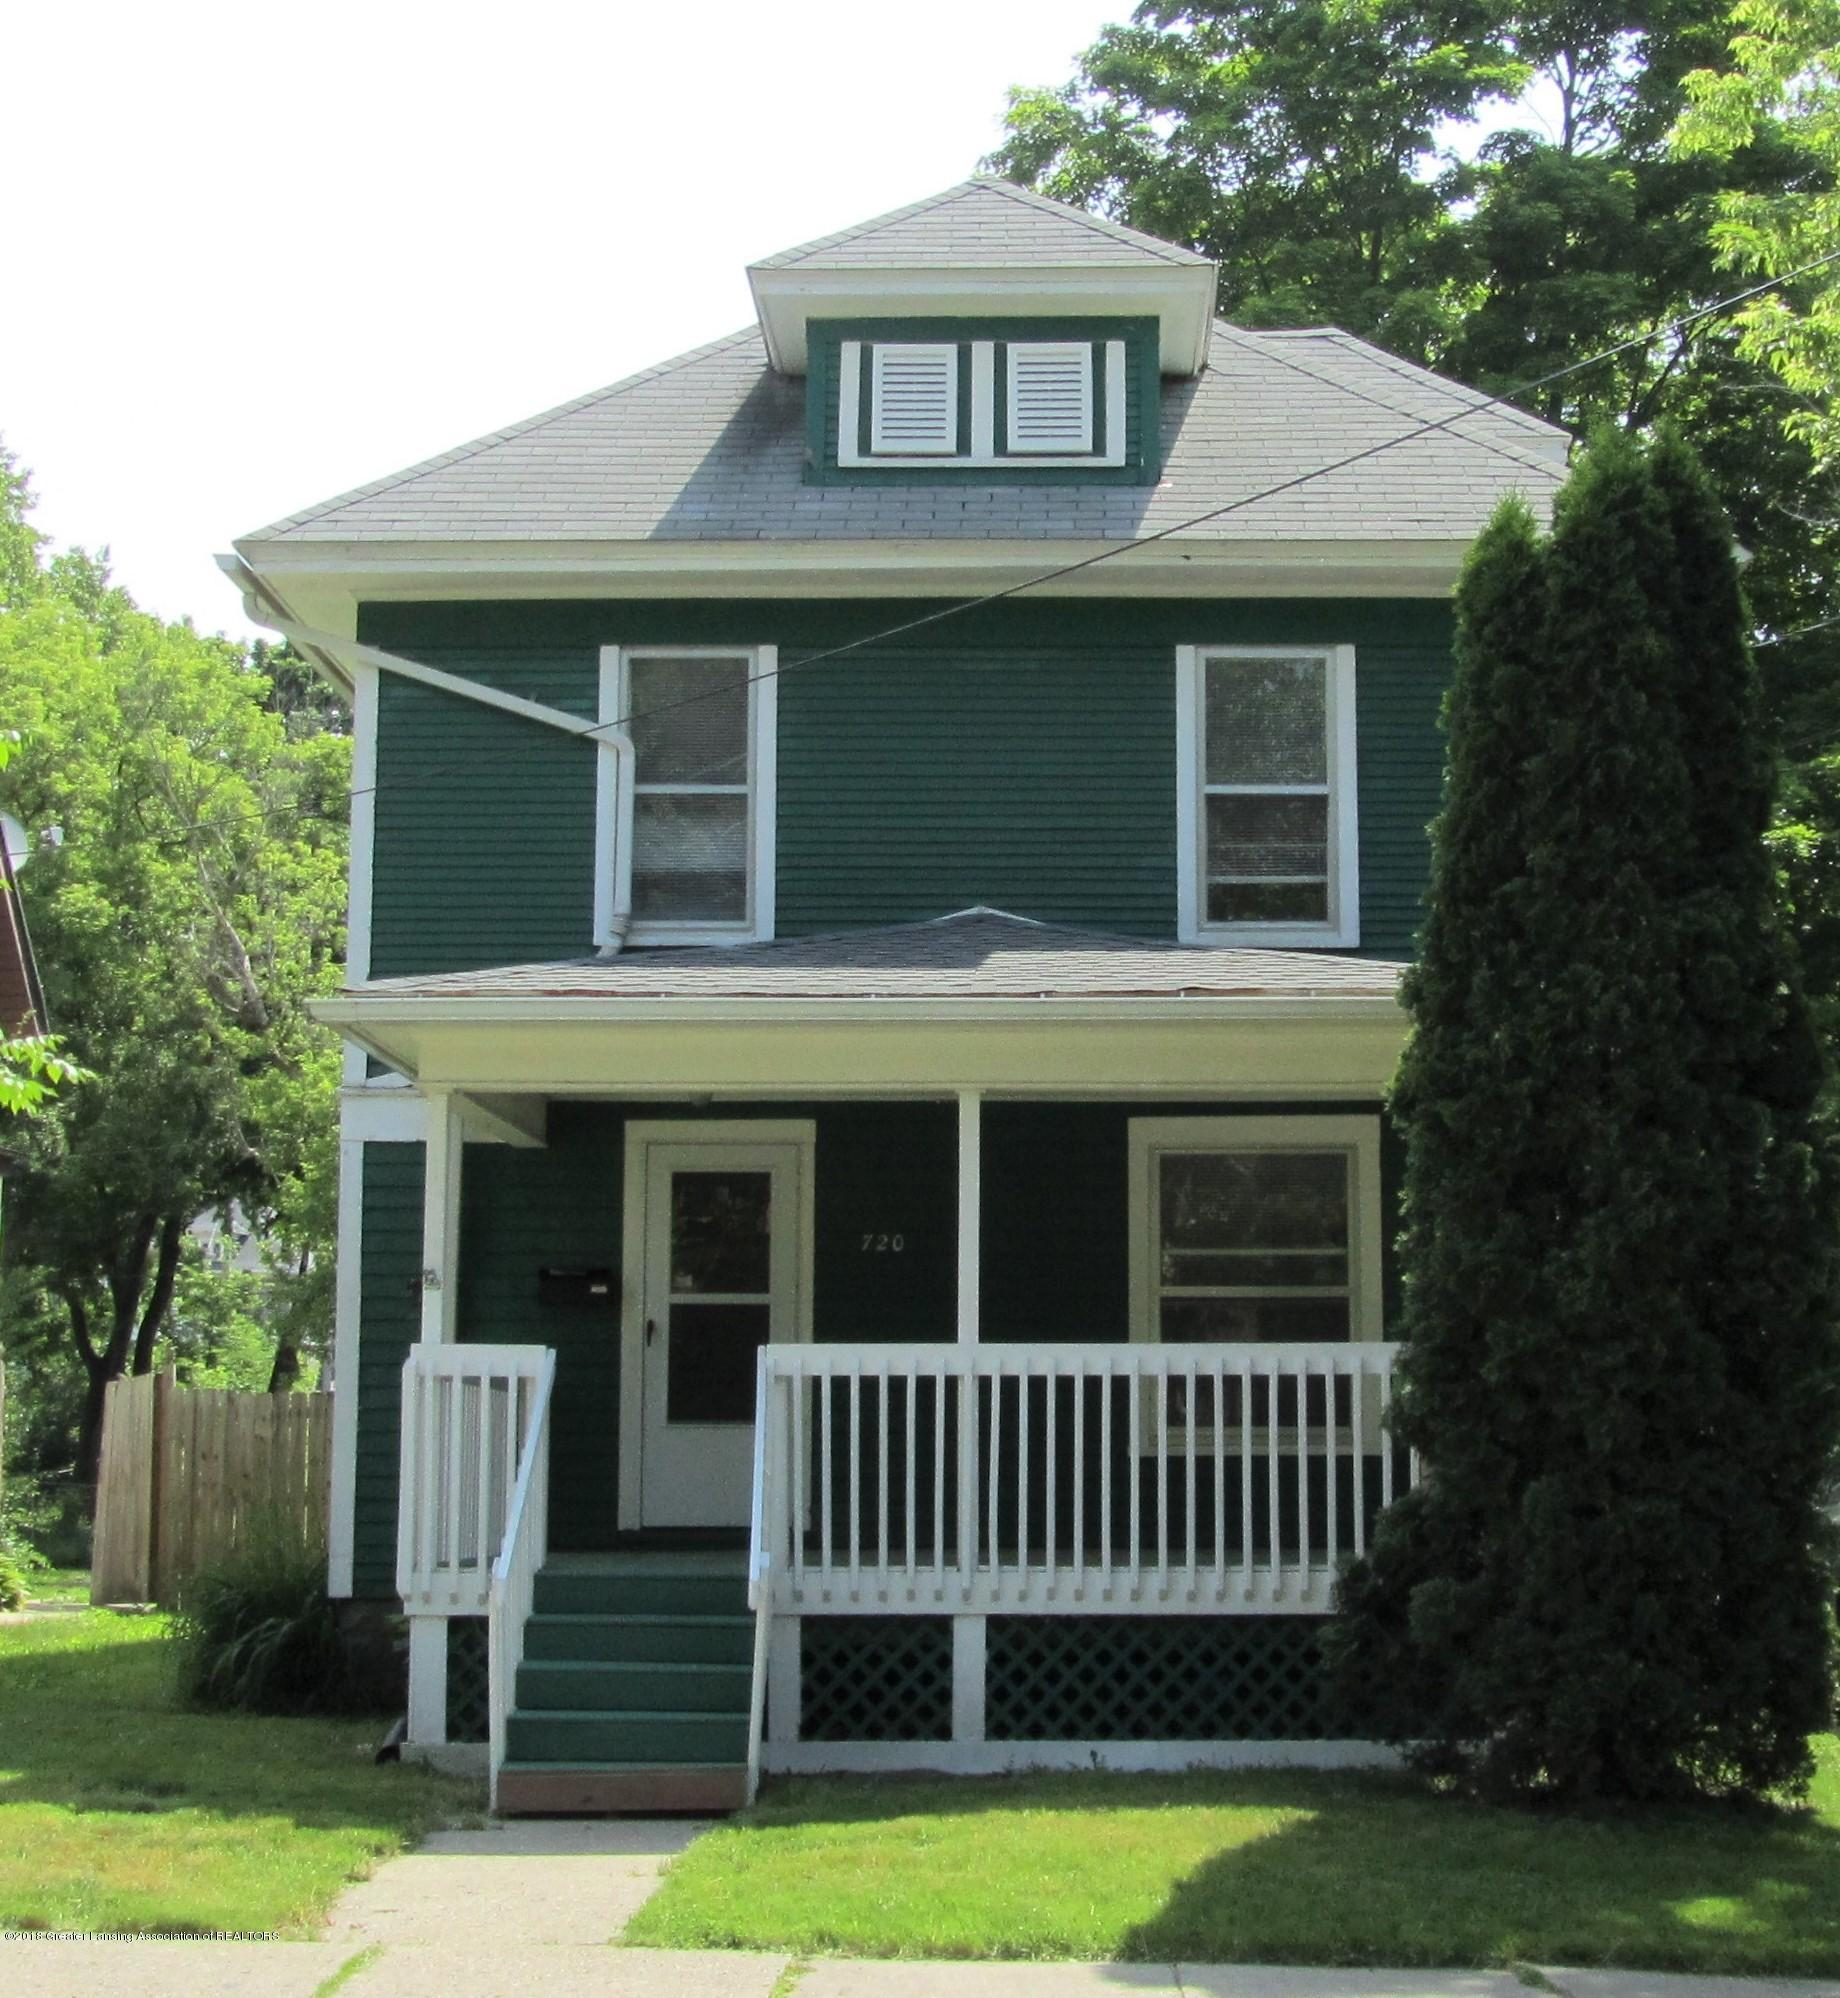 720 Princeton Ave - Front - 1